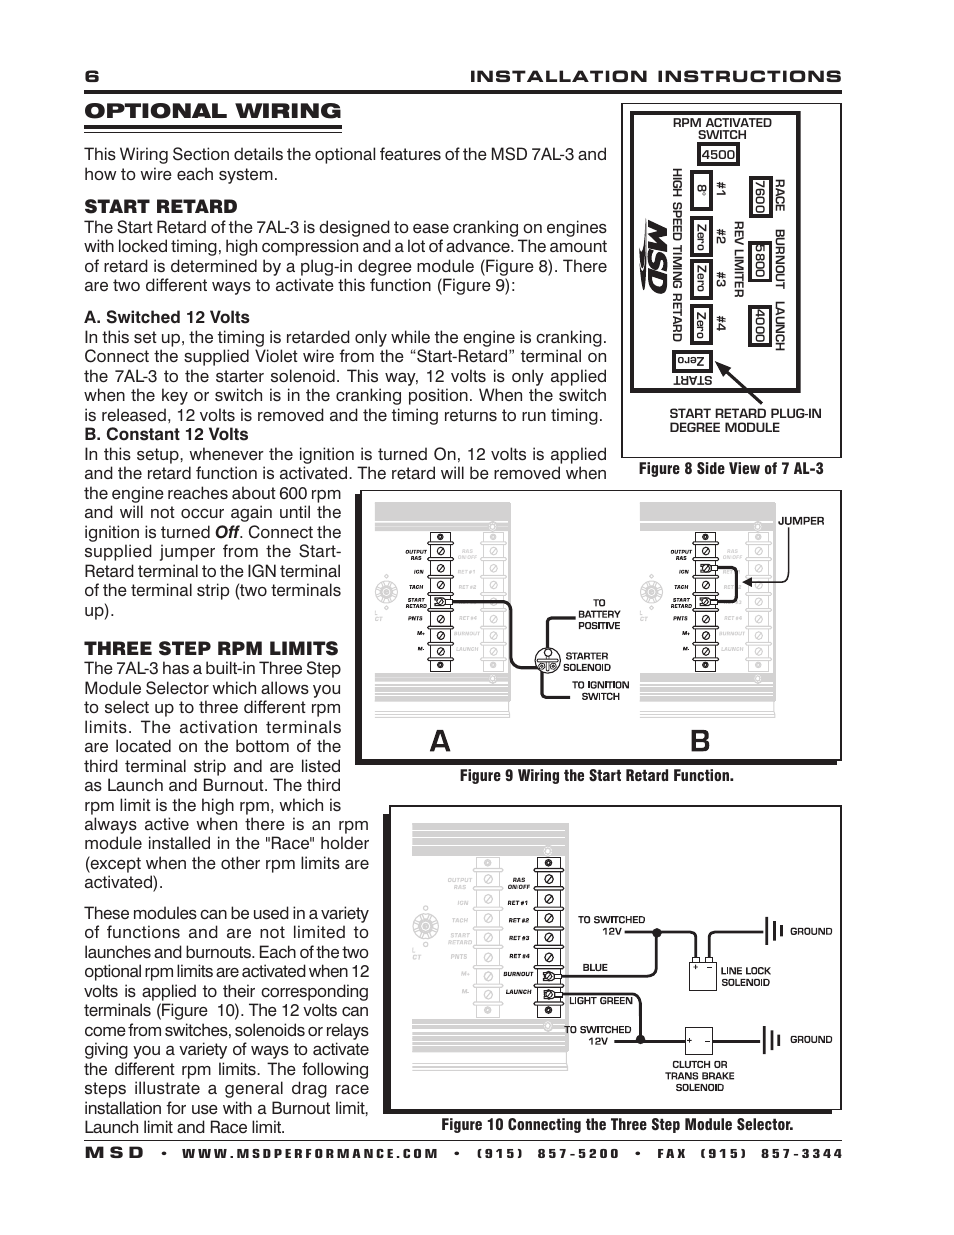 Msd Ignition Wiring Diagrams Msd 7al 3 Installation Instructions ...